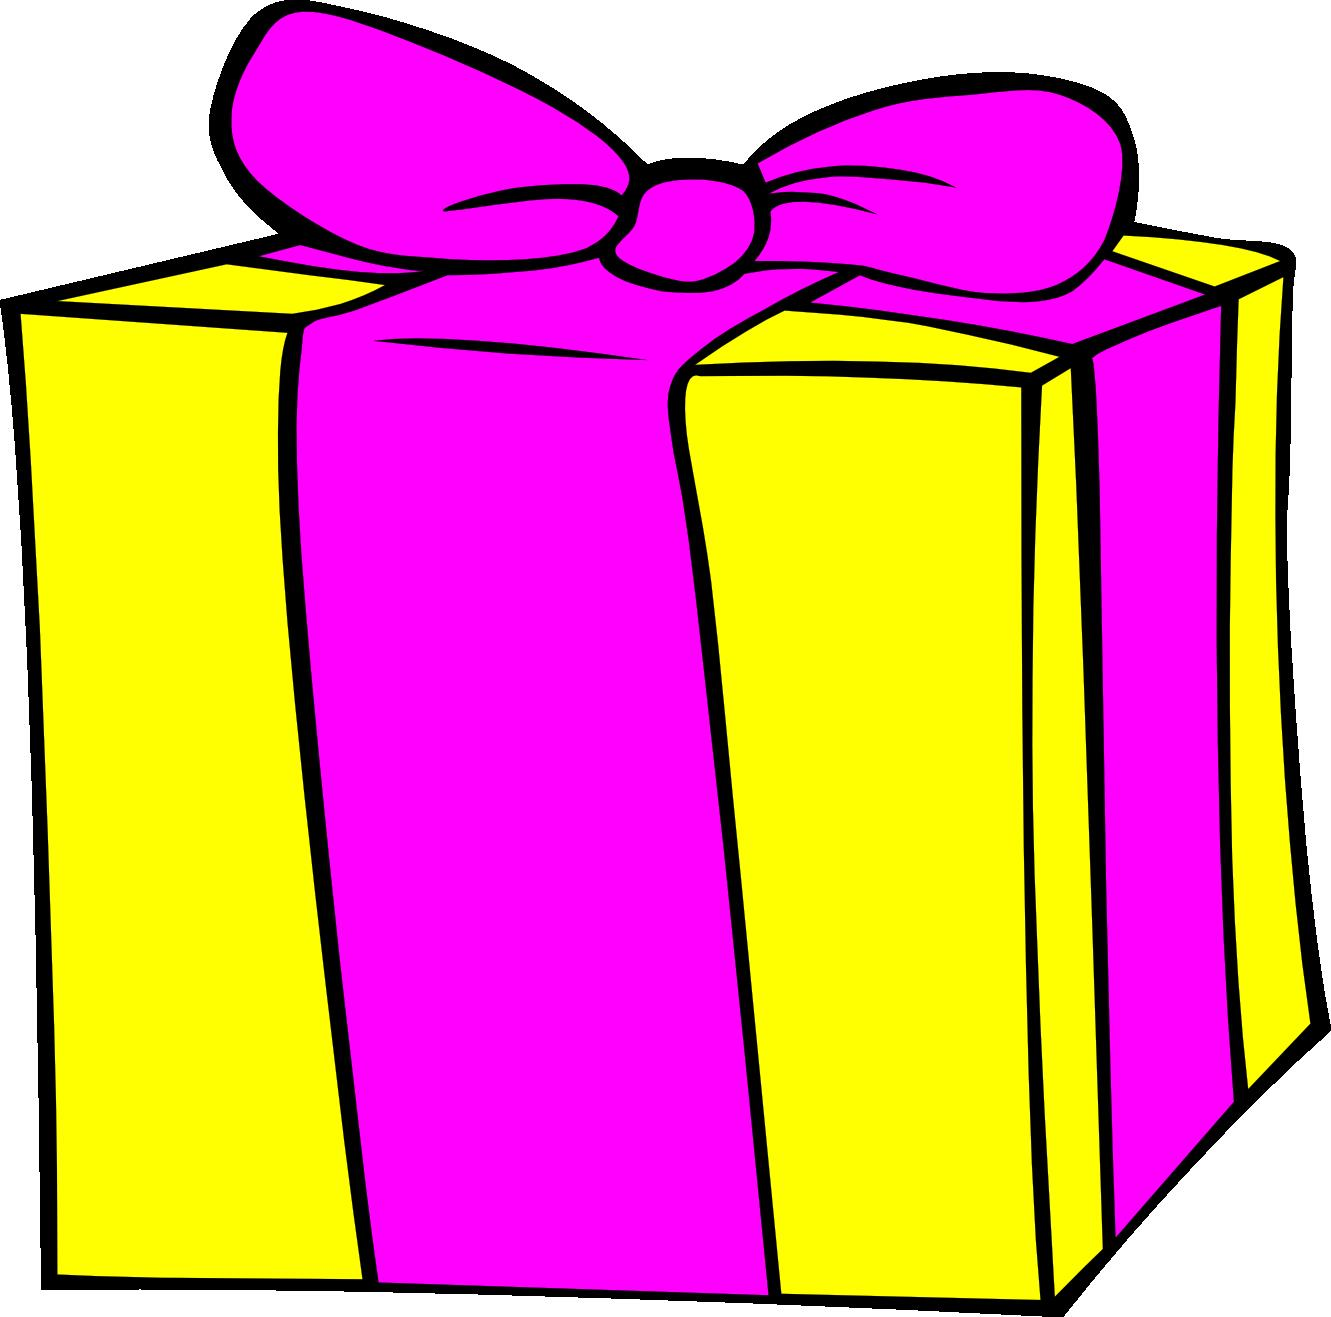 birthday present clipart ; Gift-birthday-present-clip-art-free-clipart-images-2